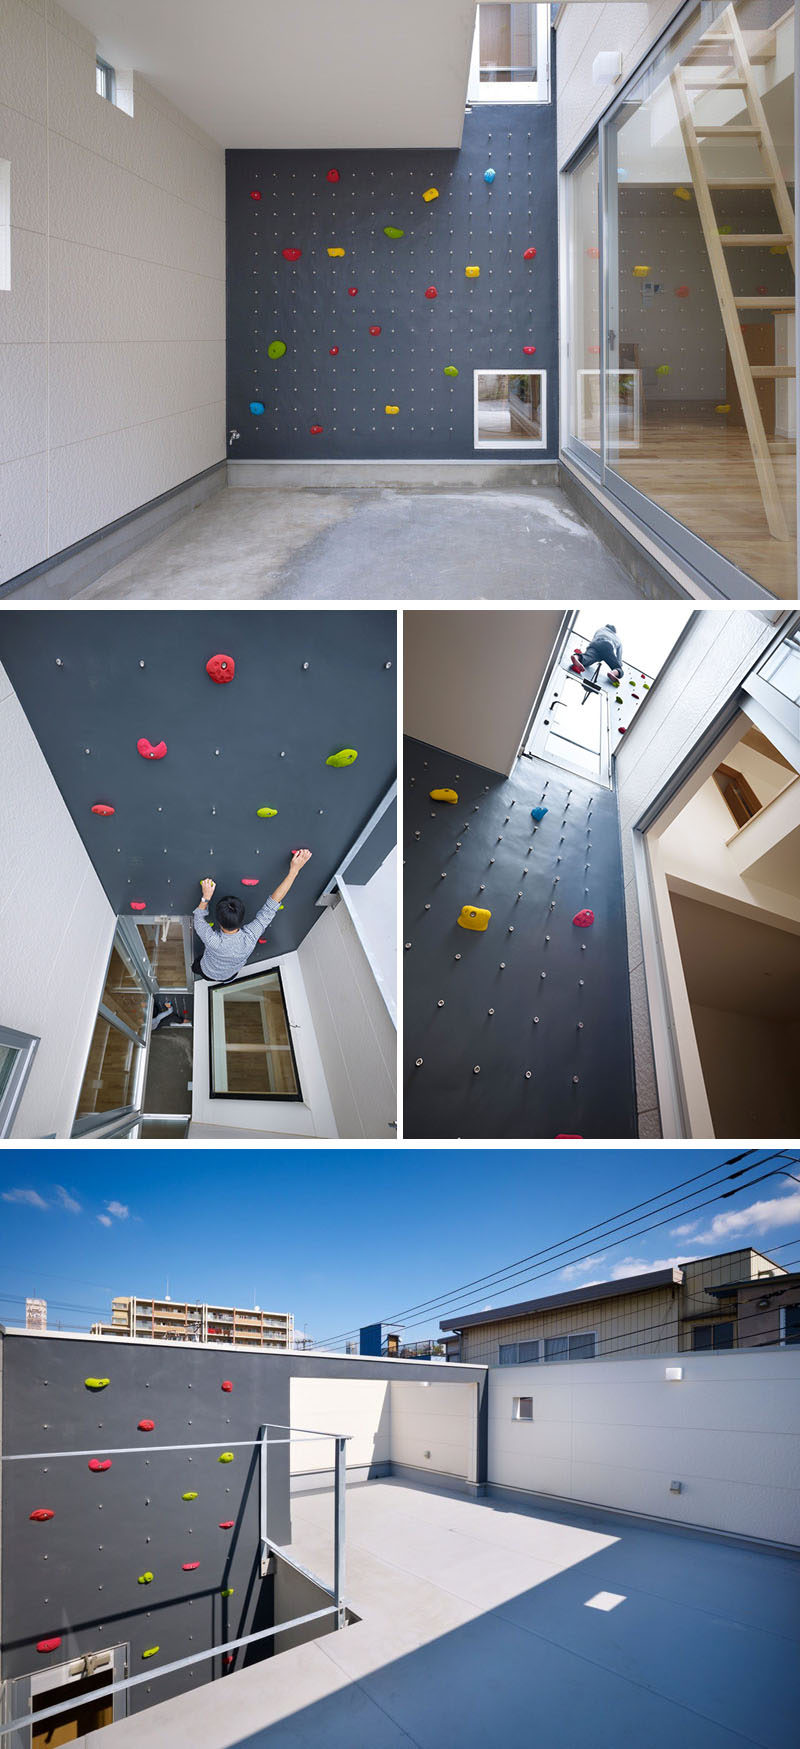 This grey rock climbing wall with colorful holds leads from one outdoor floor to another, allowing someone to climb from the bottom of the house all the way to the roof.